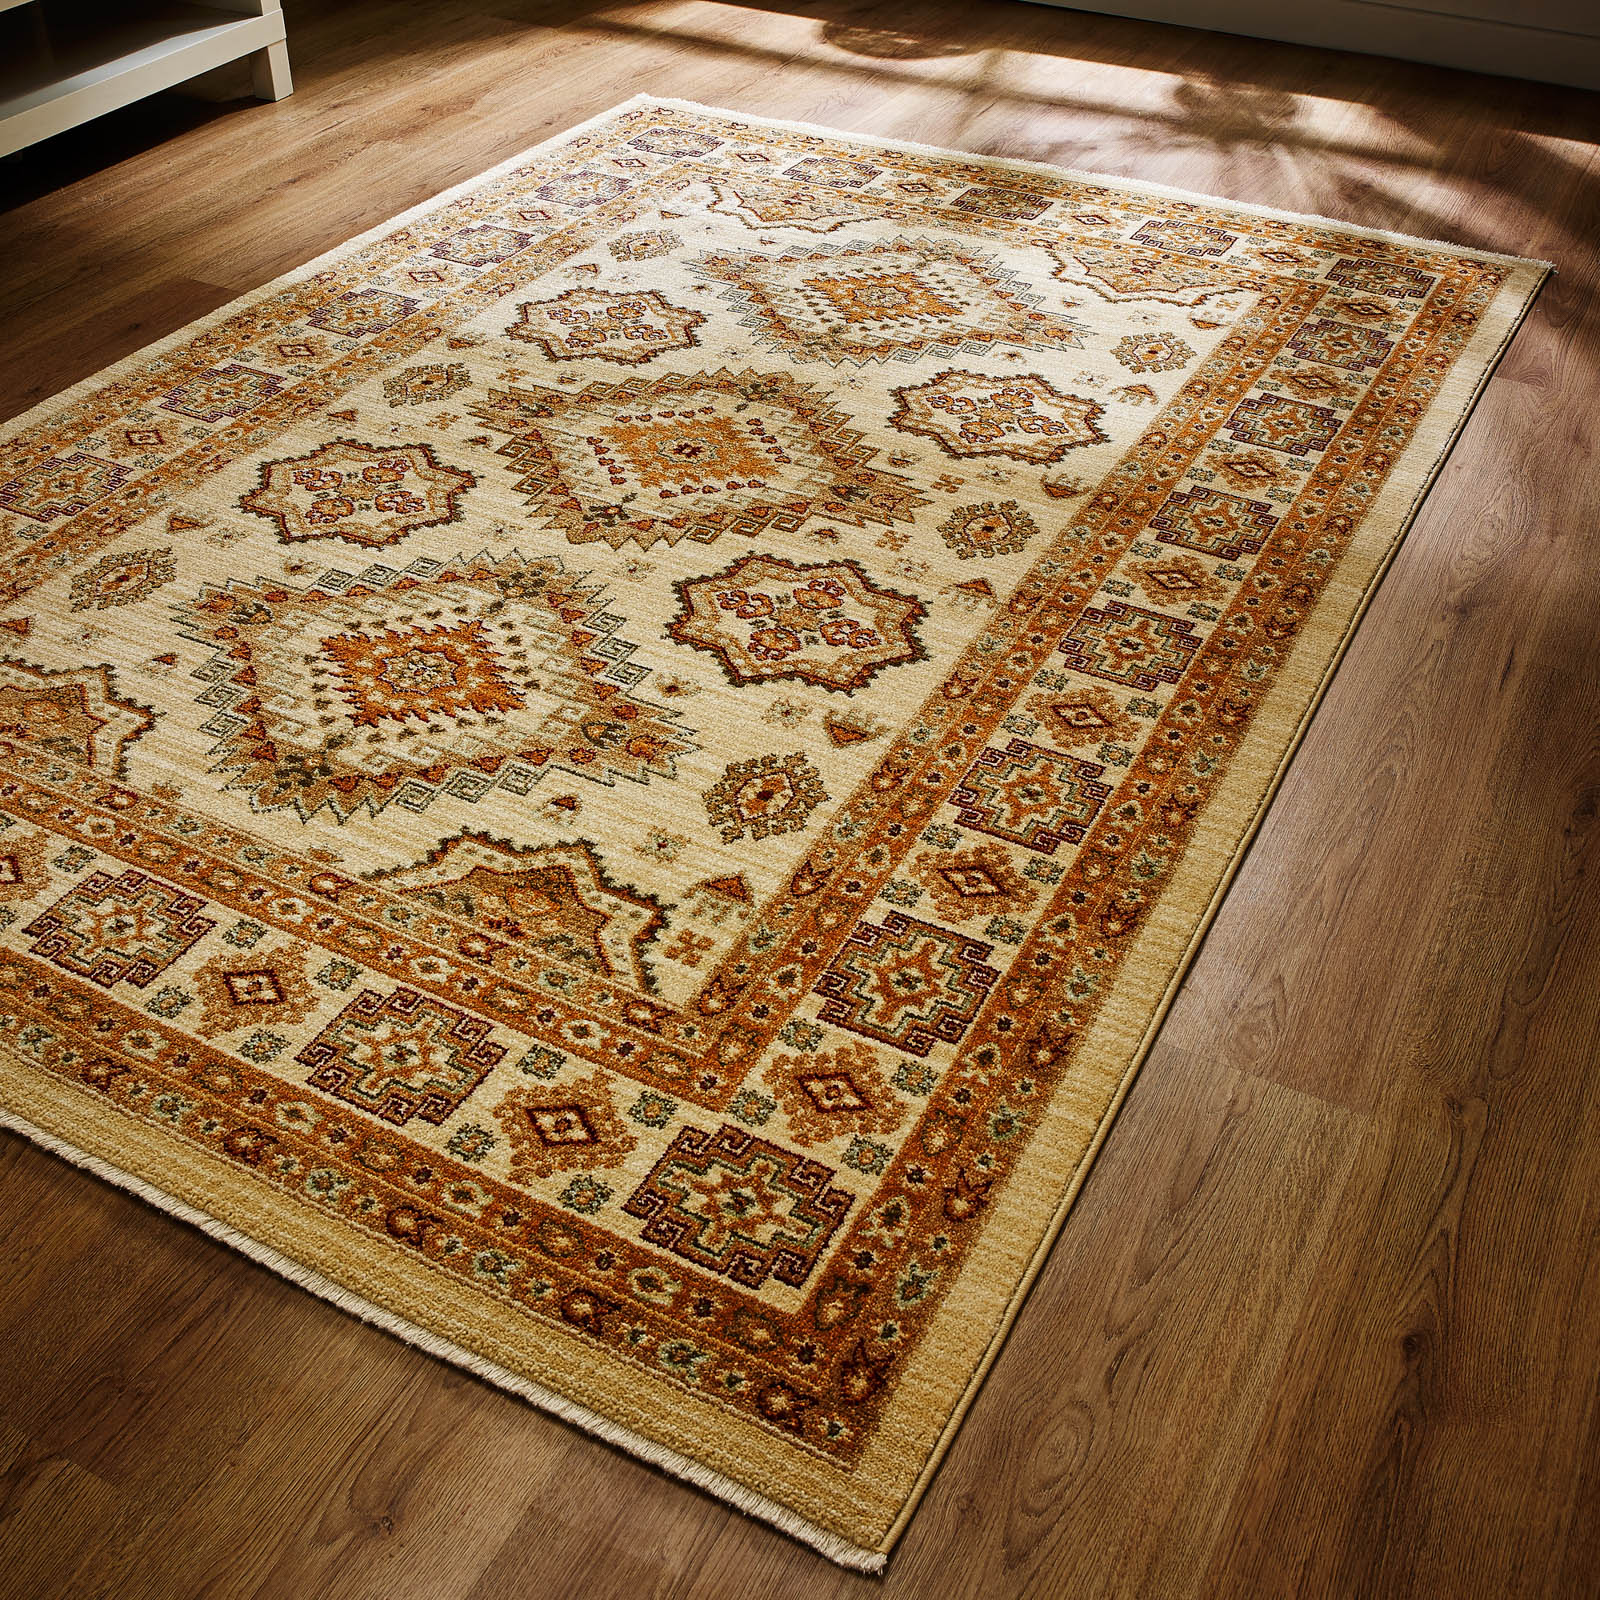 Persia Ahvaz Rugs in Cream